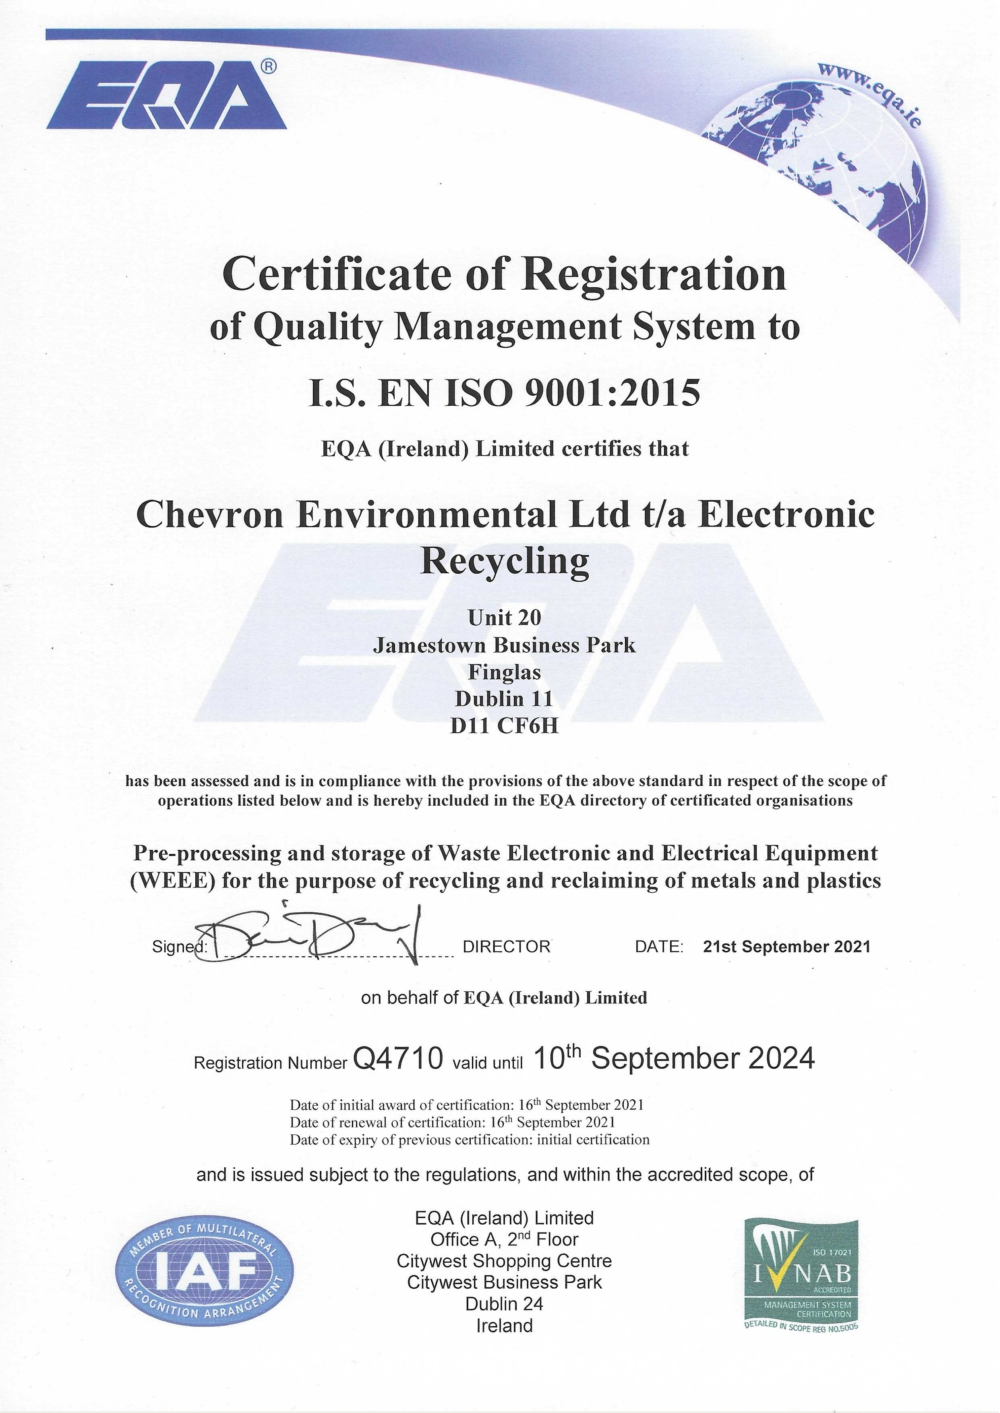 iso-9001-2015-certificate-10-09-2021-3